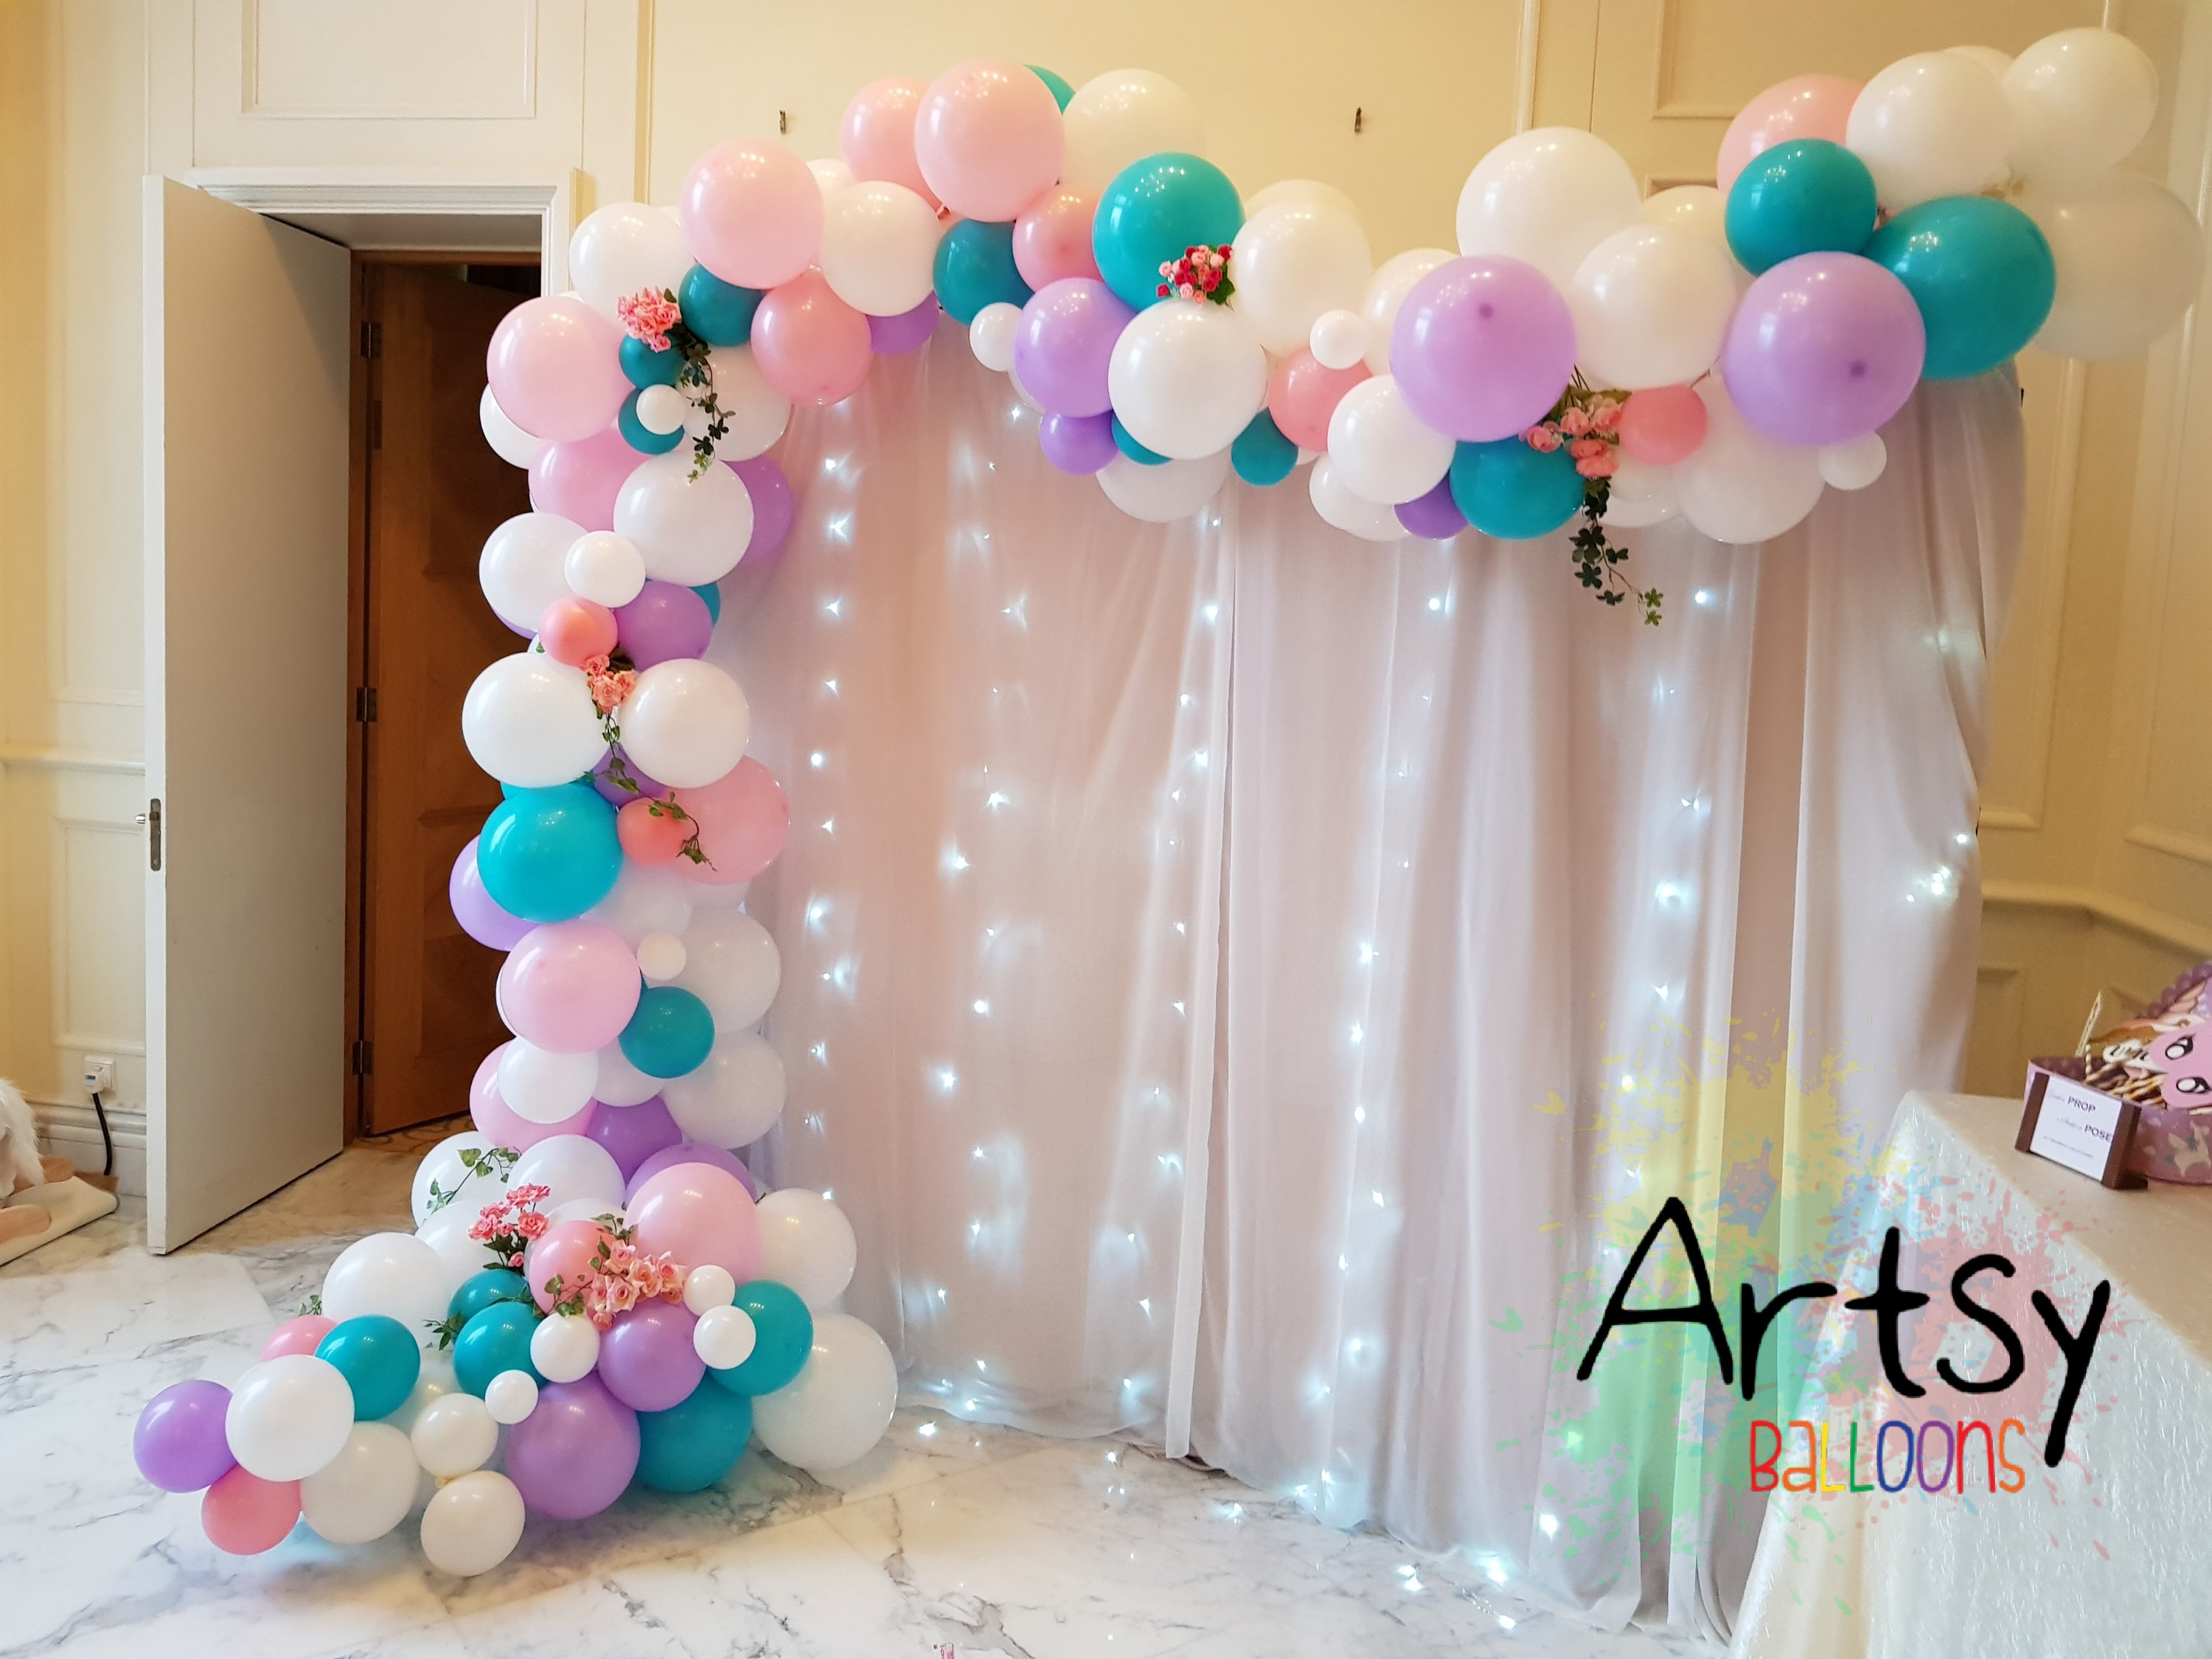 Organic balloon decorations with cloth backdrop and LED lights